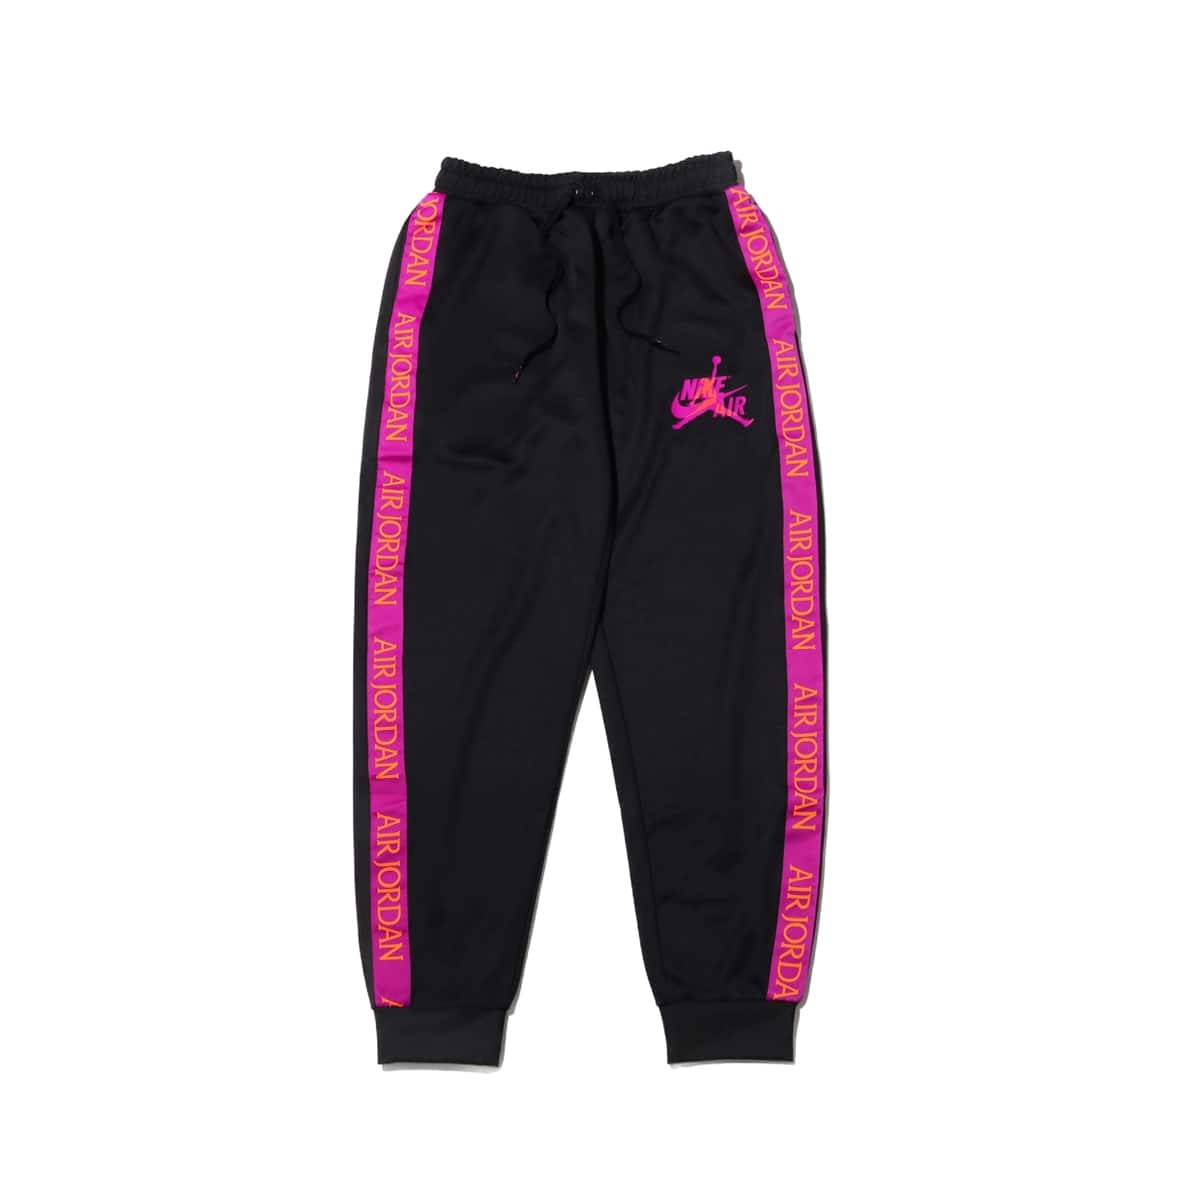 NIKE M J JM CLSC TRICOT WARMUP PANT BLACK/VIVID PURPLE 19HO-I_photo_large